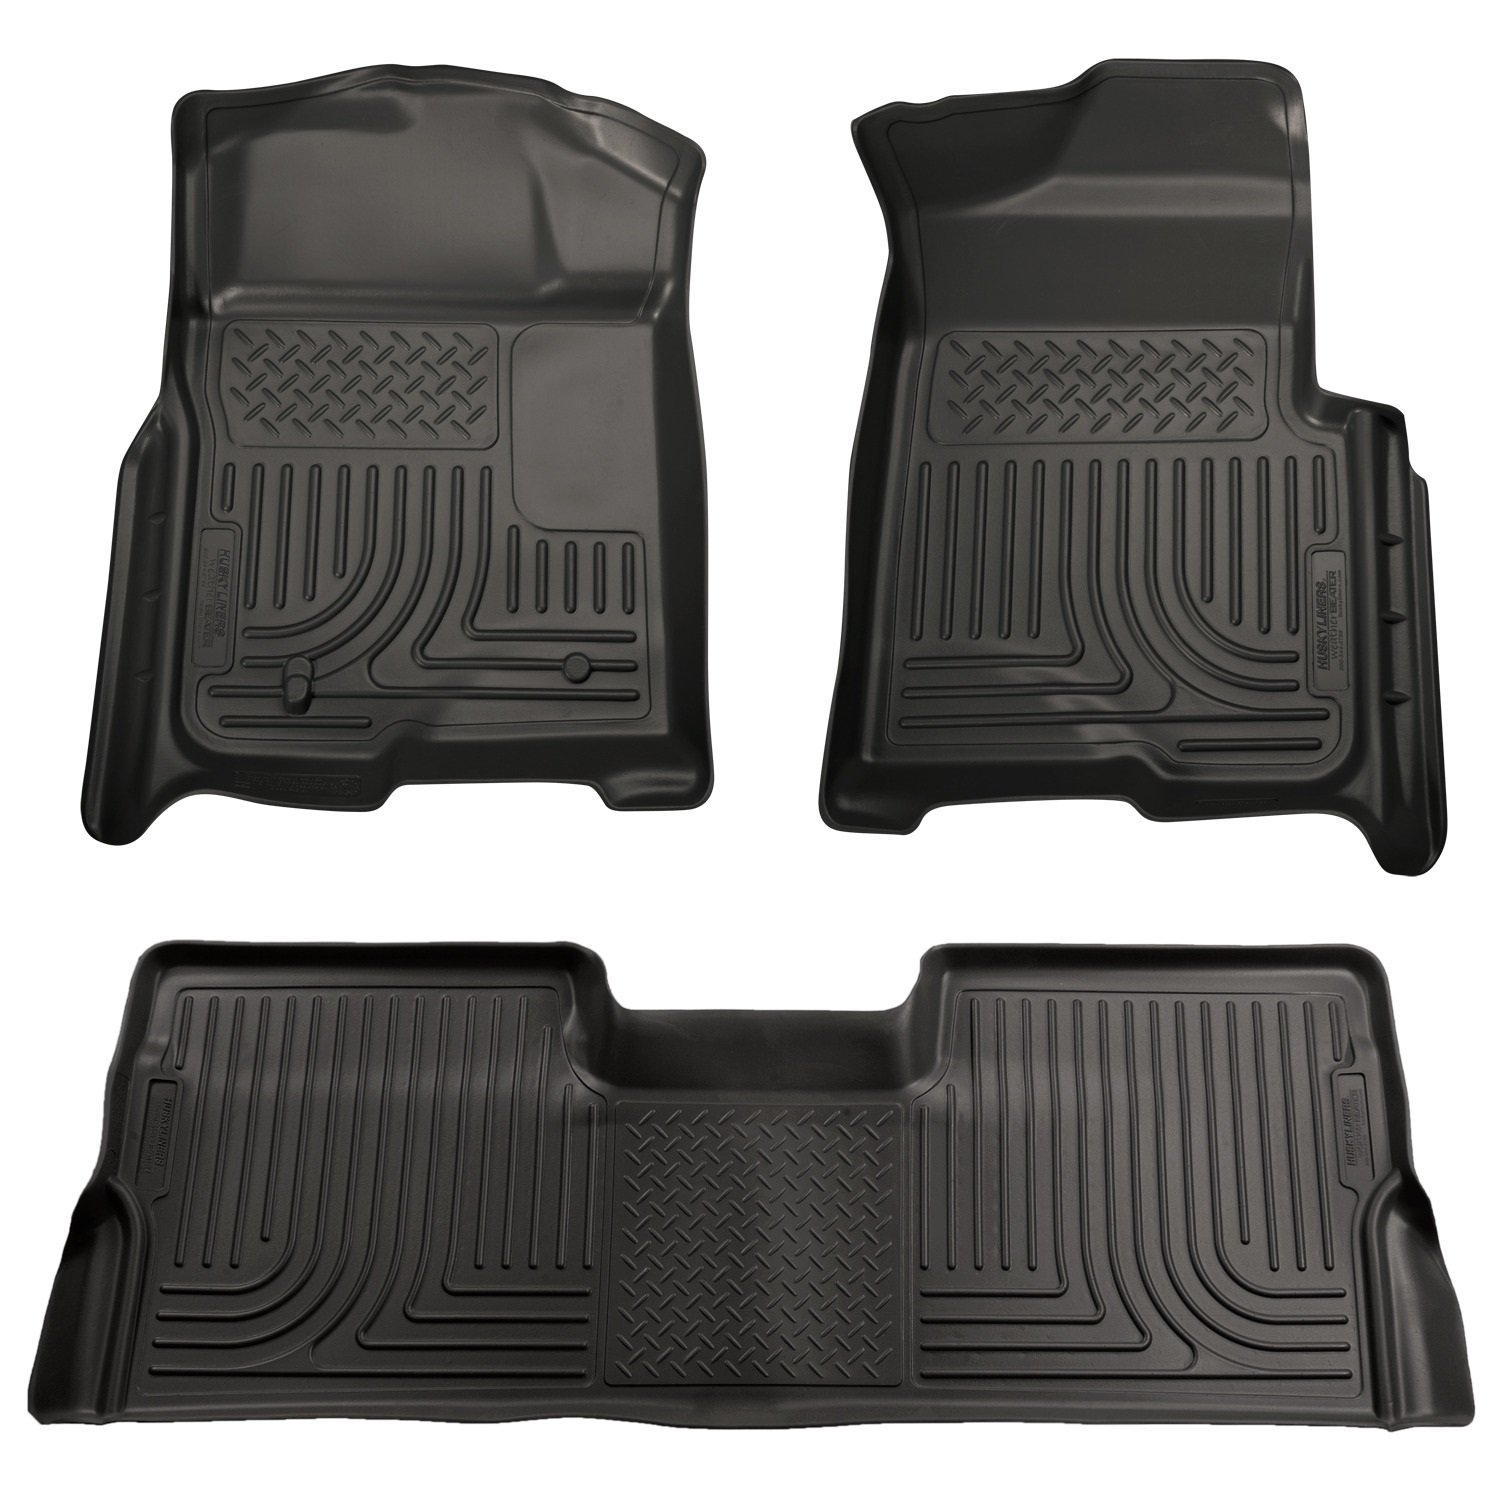 Weathertech mats walmart - Amazon Com Husky Liners Front 2nd Seat Floor Liners Fits 09 14 F150 Supercrew Automotive